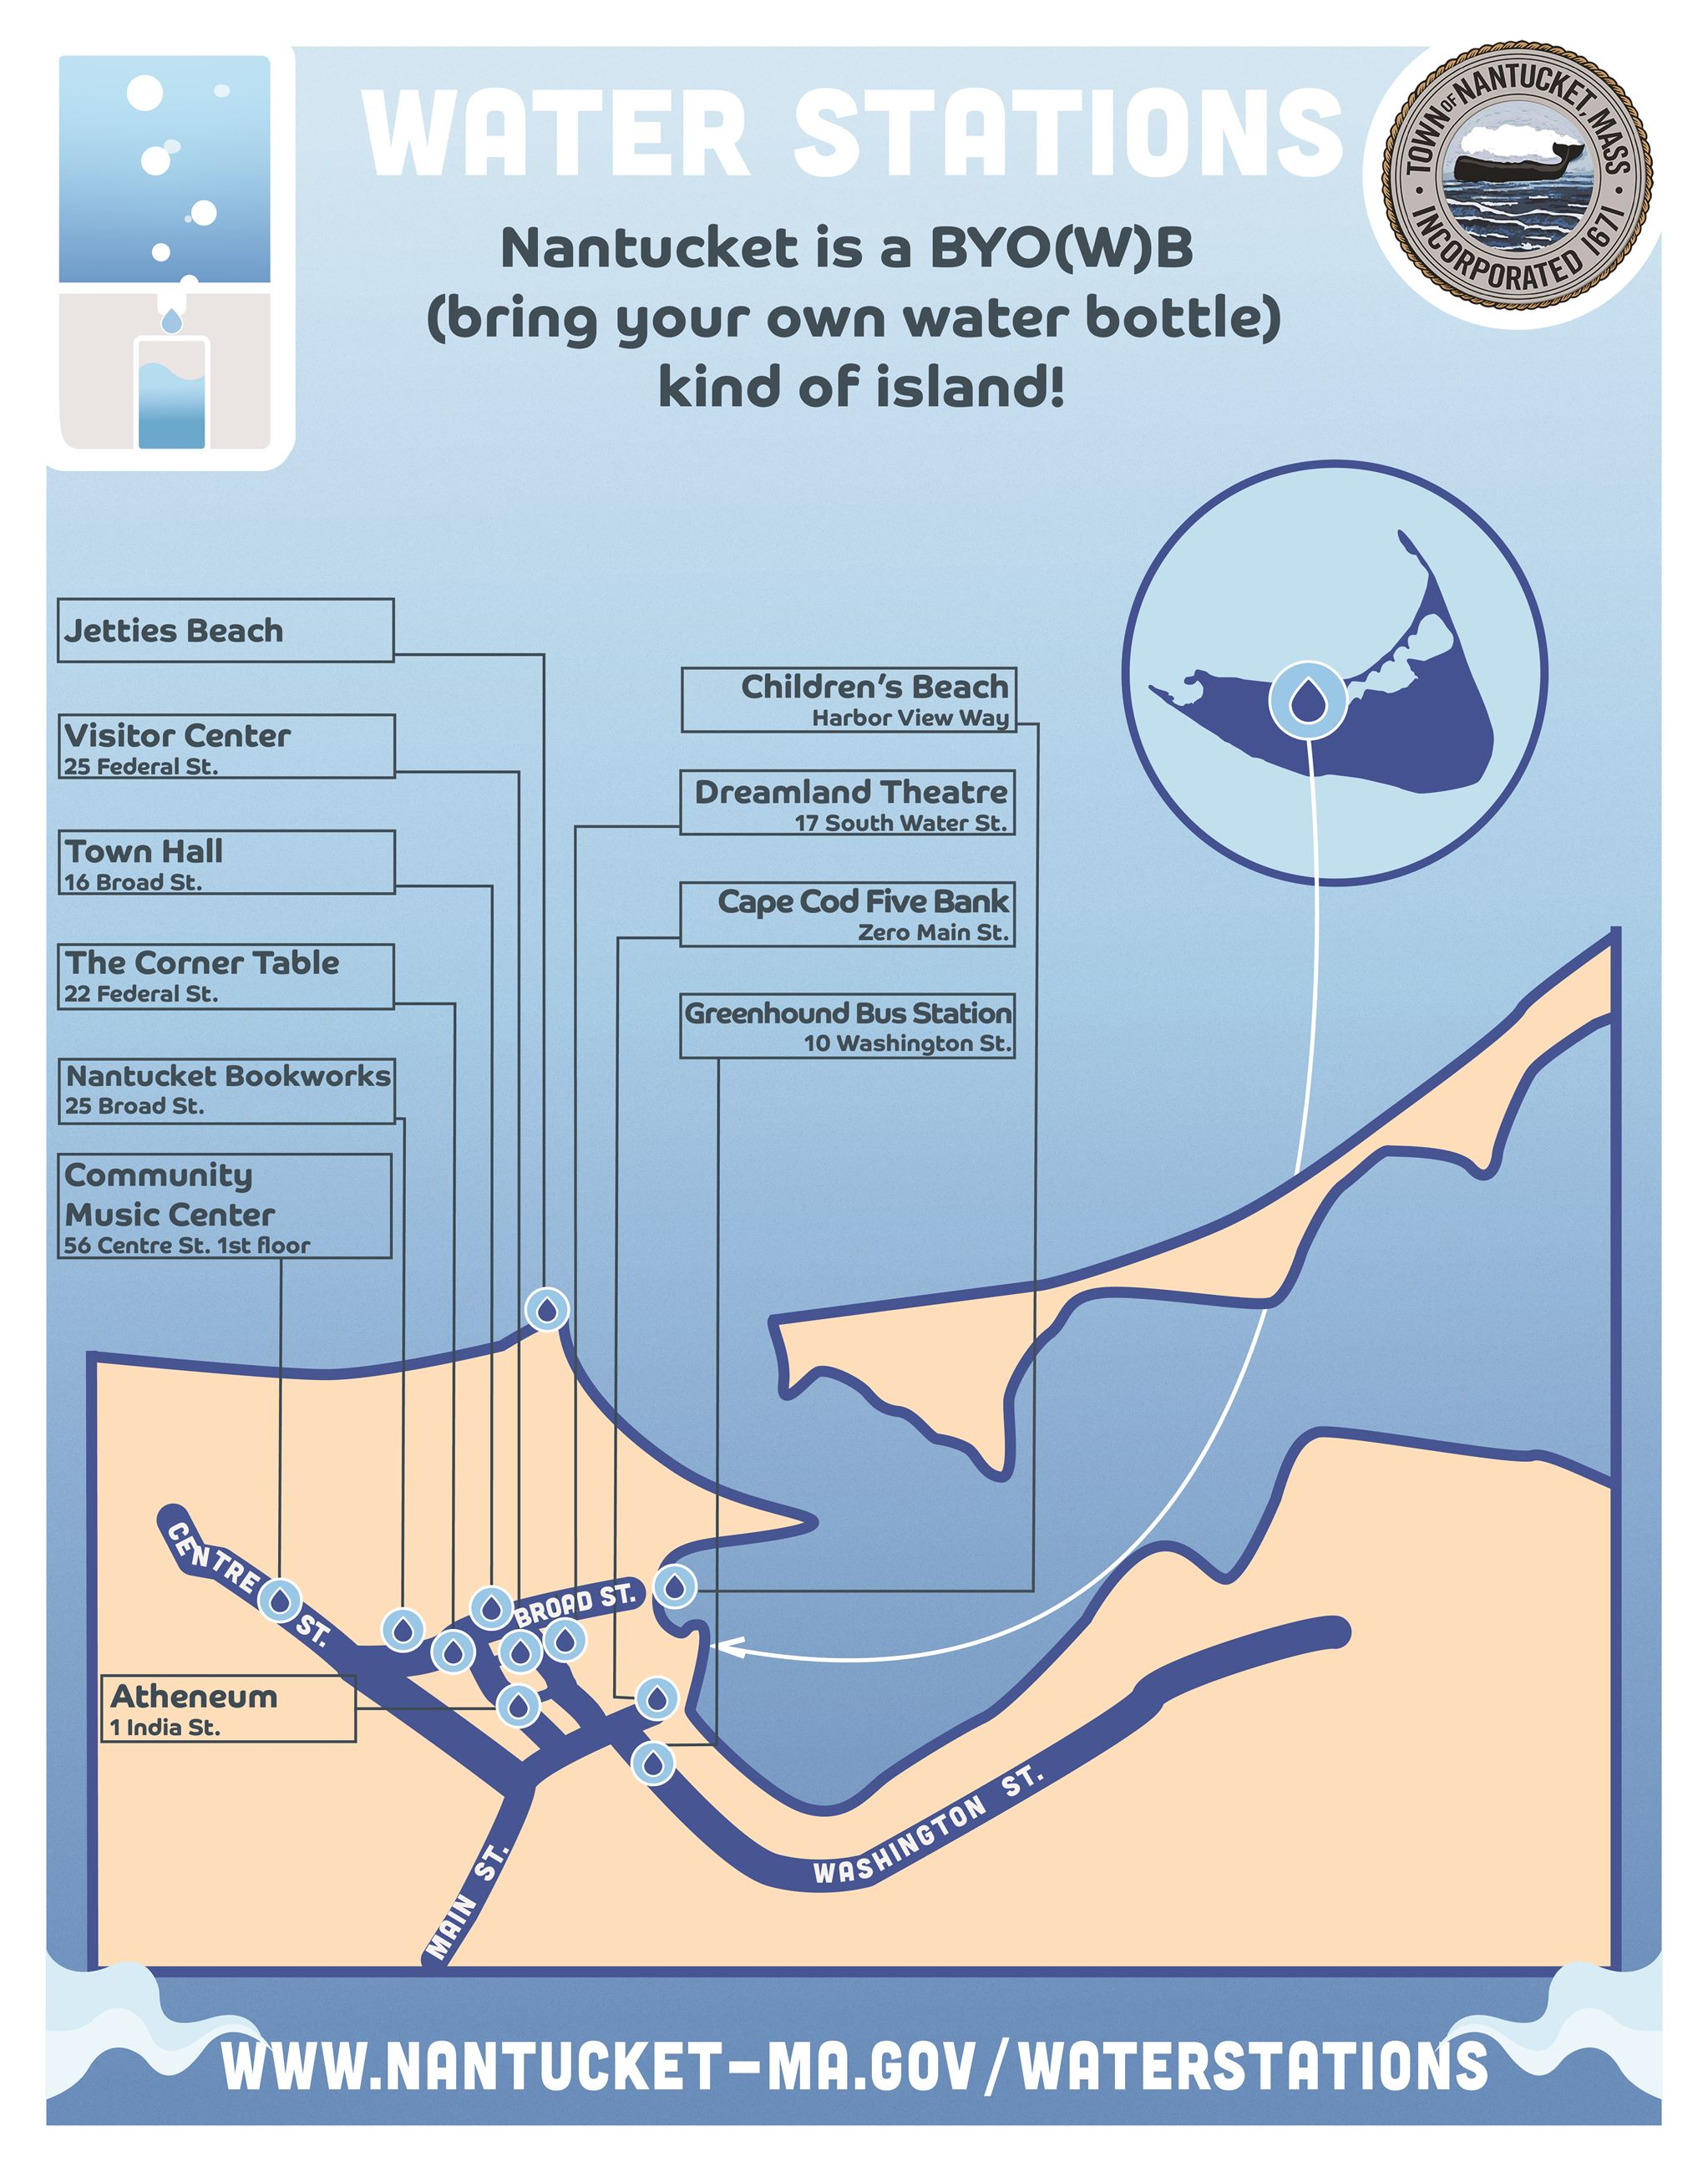 Water Stations on Nantucket Opens in new window